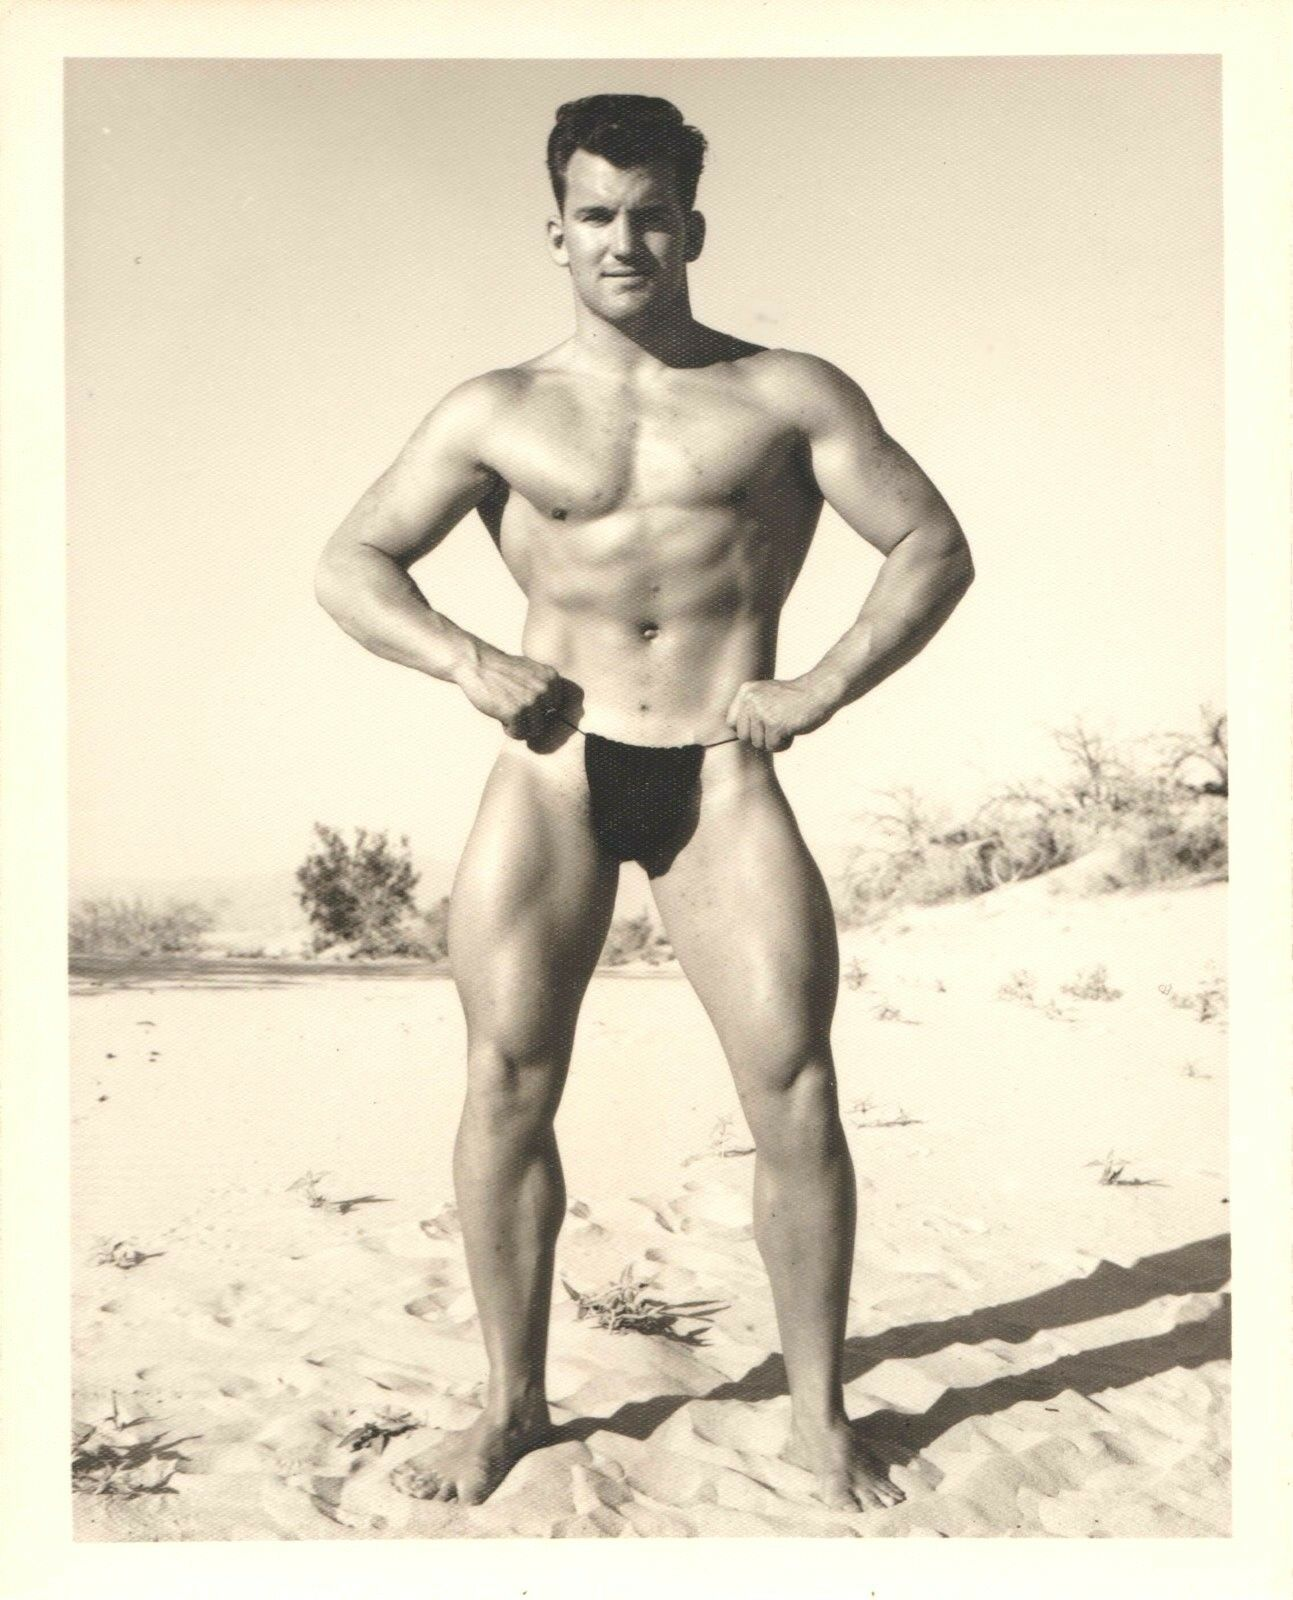 Vintage Male Nude Photography